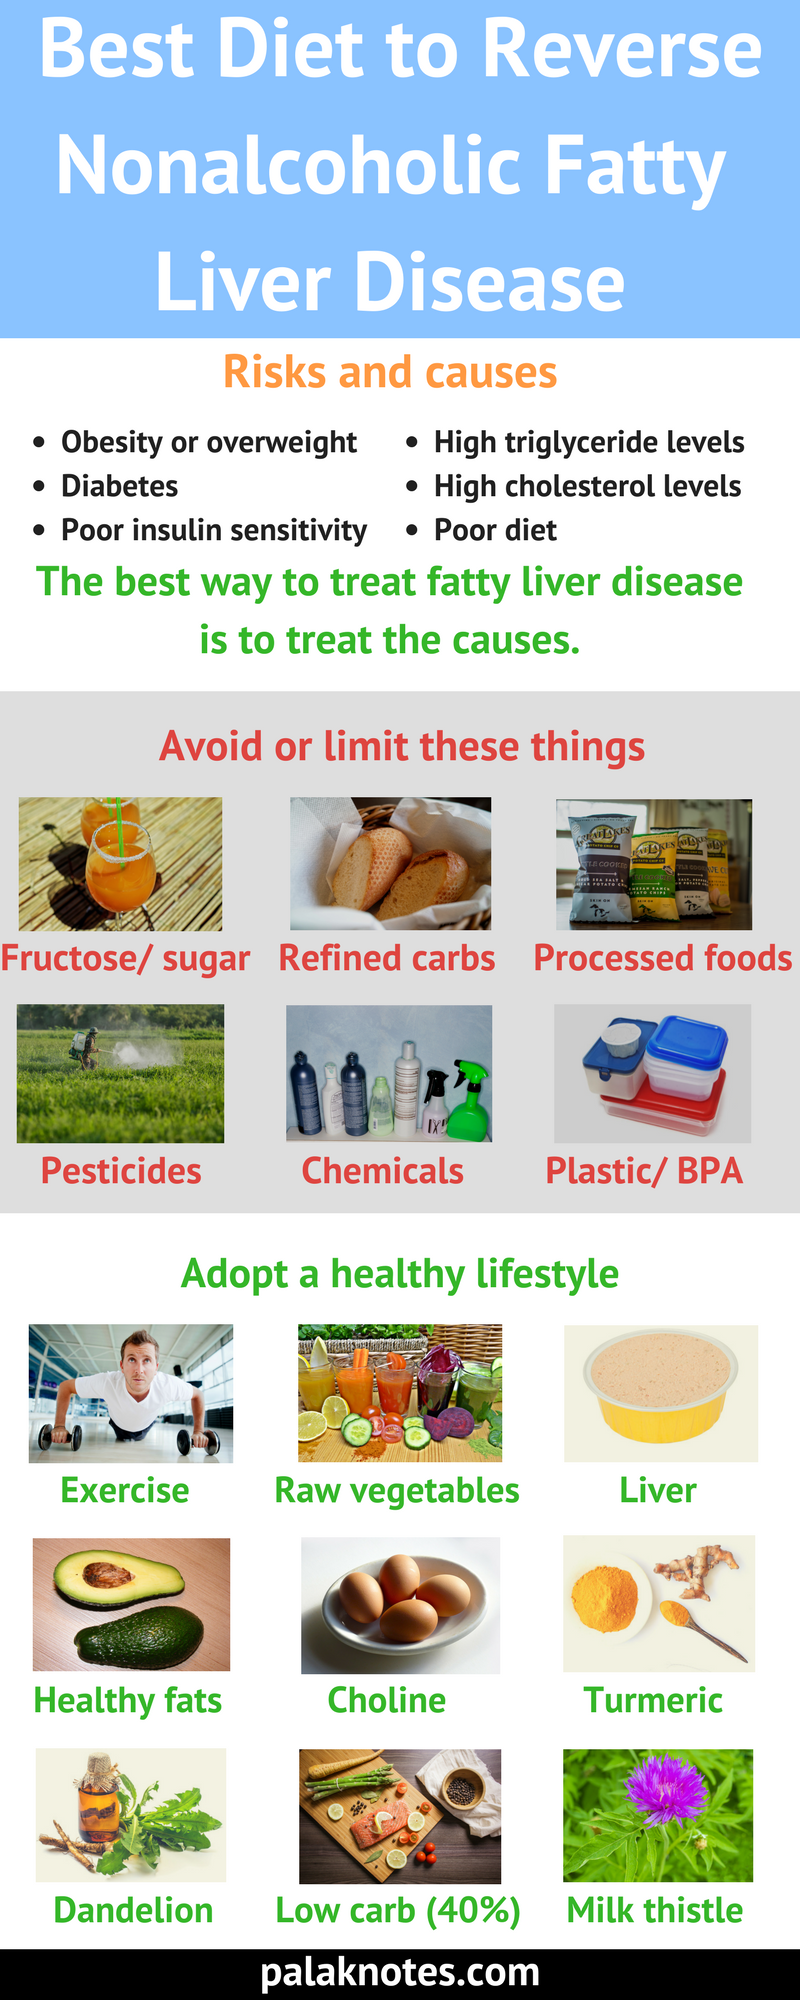 diet to reverse fatty liver disease